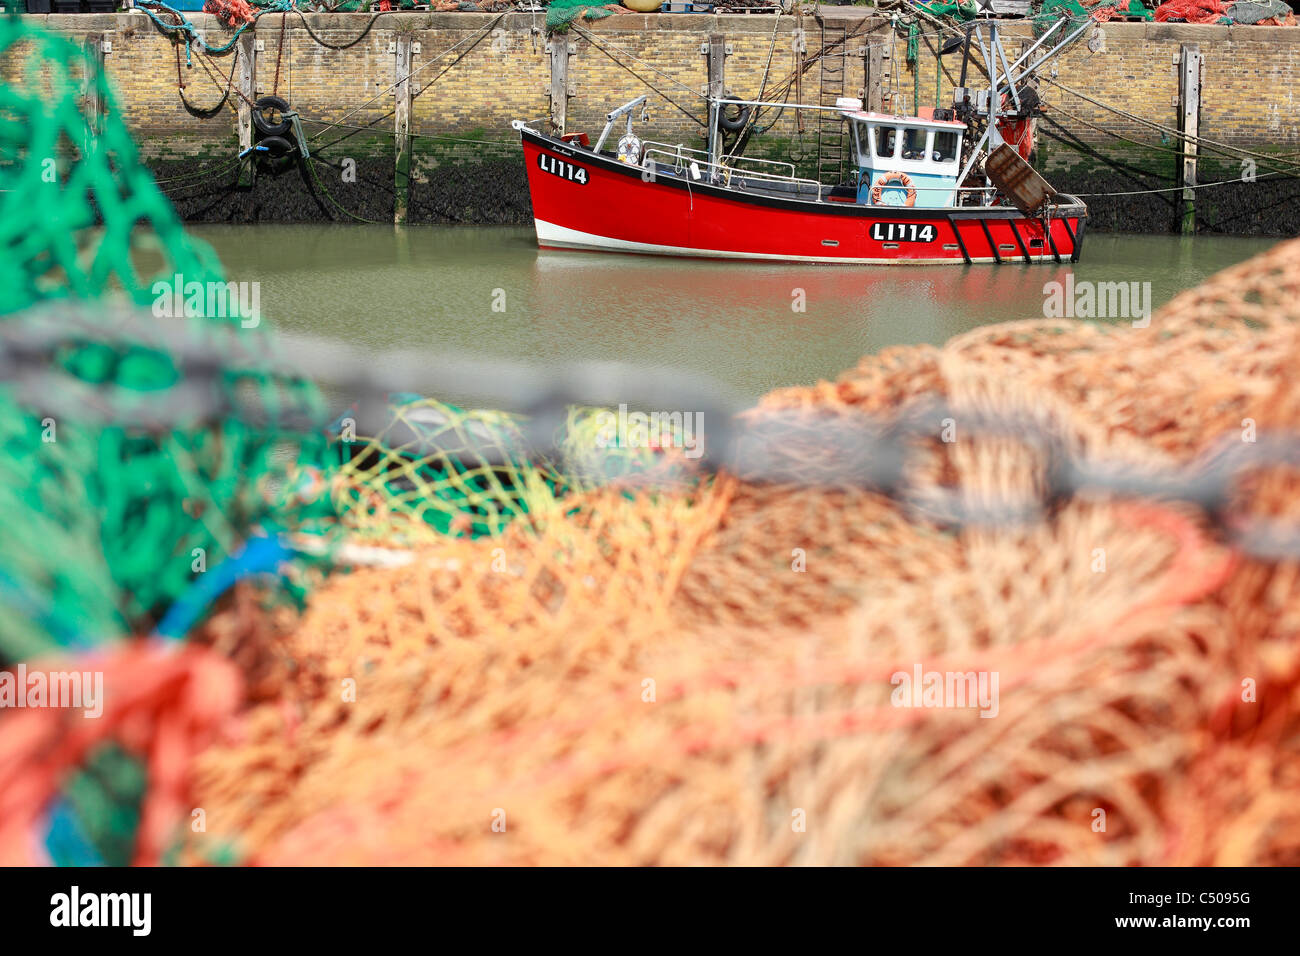 Fishing boat and nets in Whitstable harbour June 2011 - Stock Image